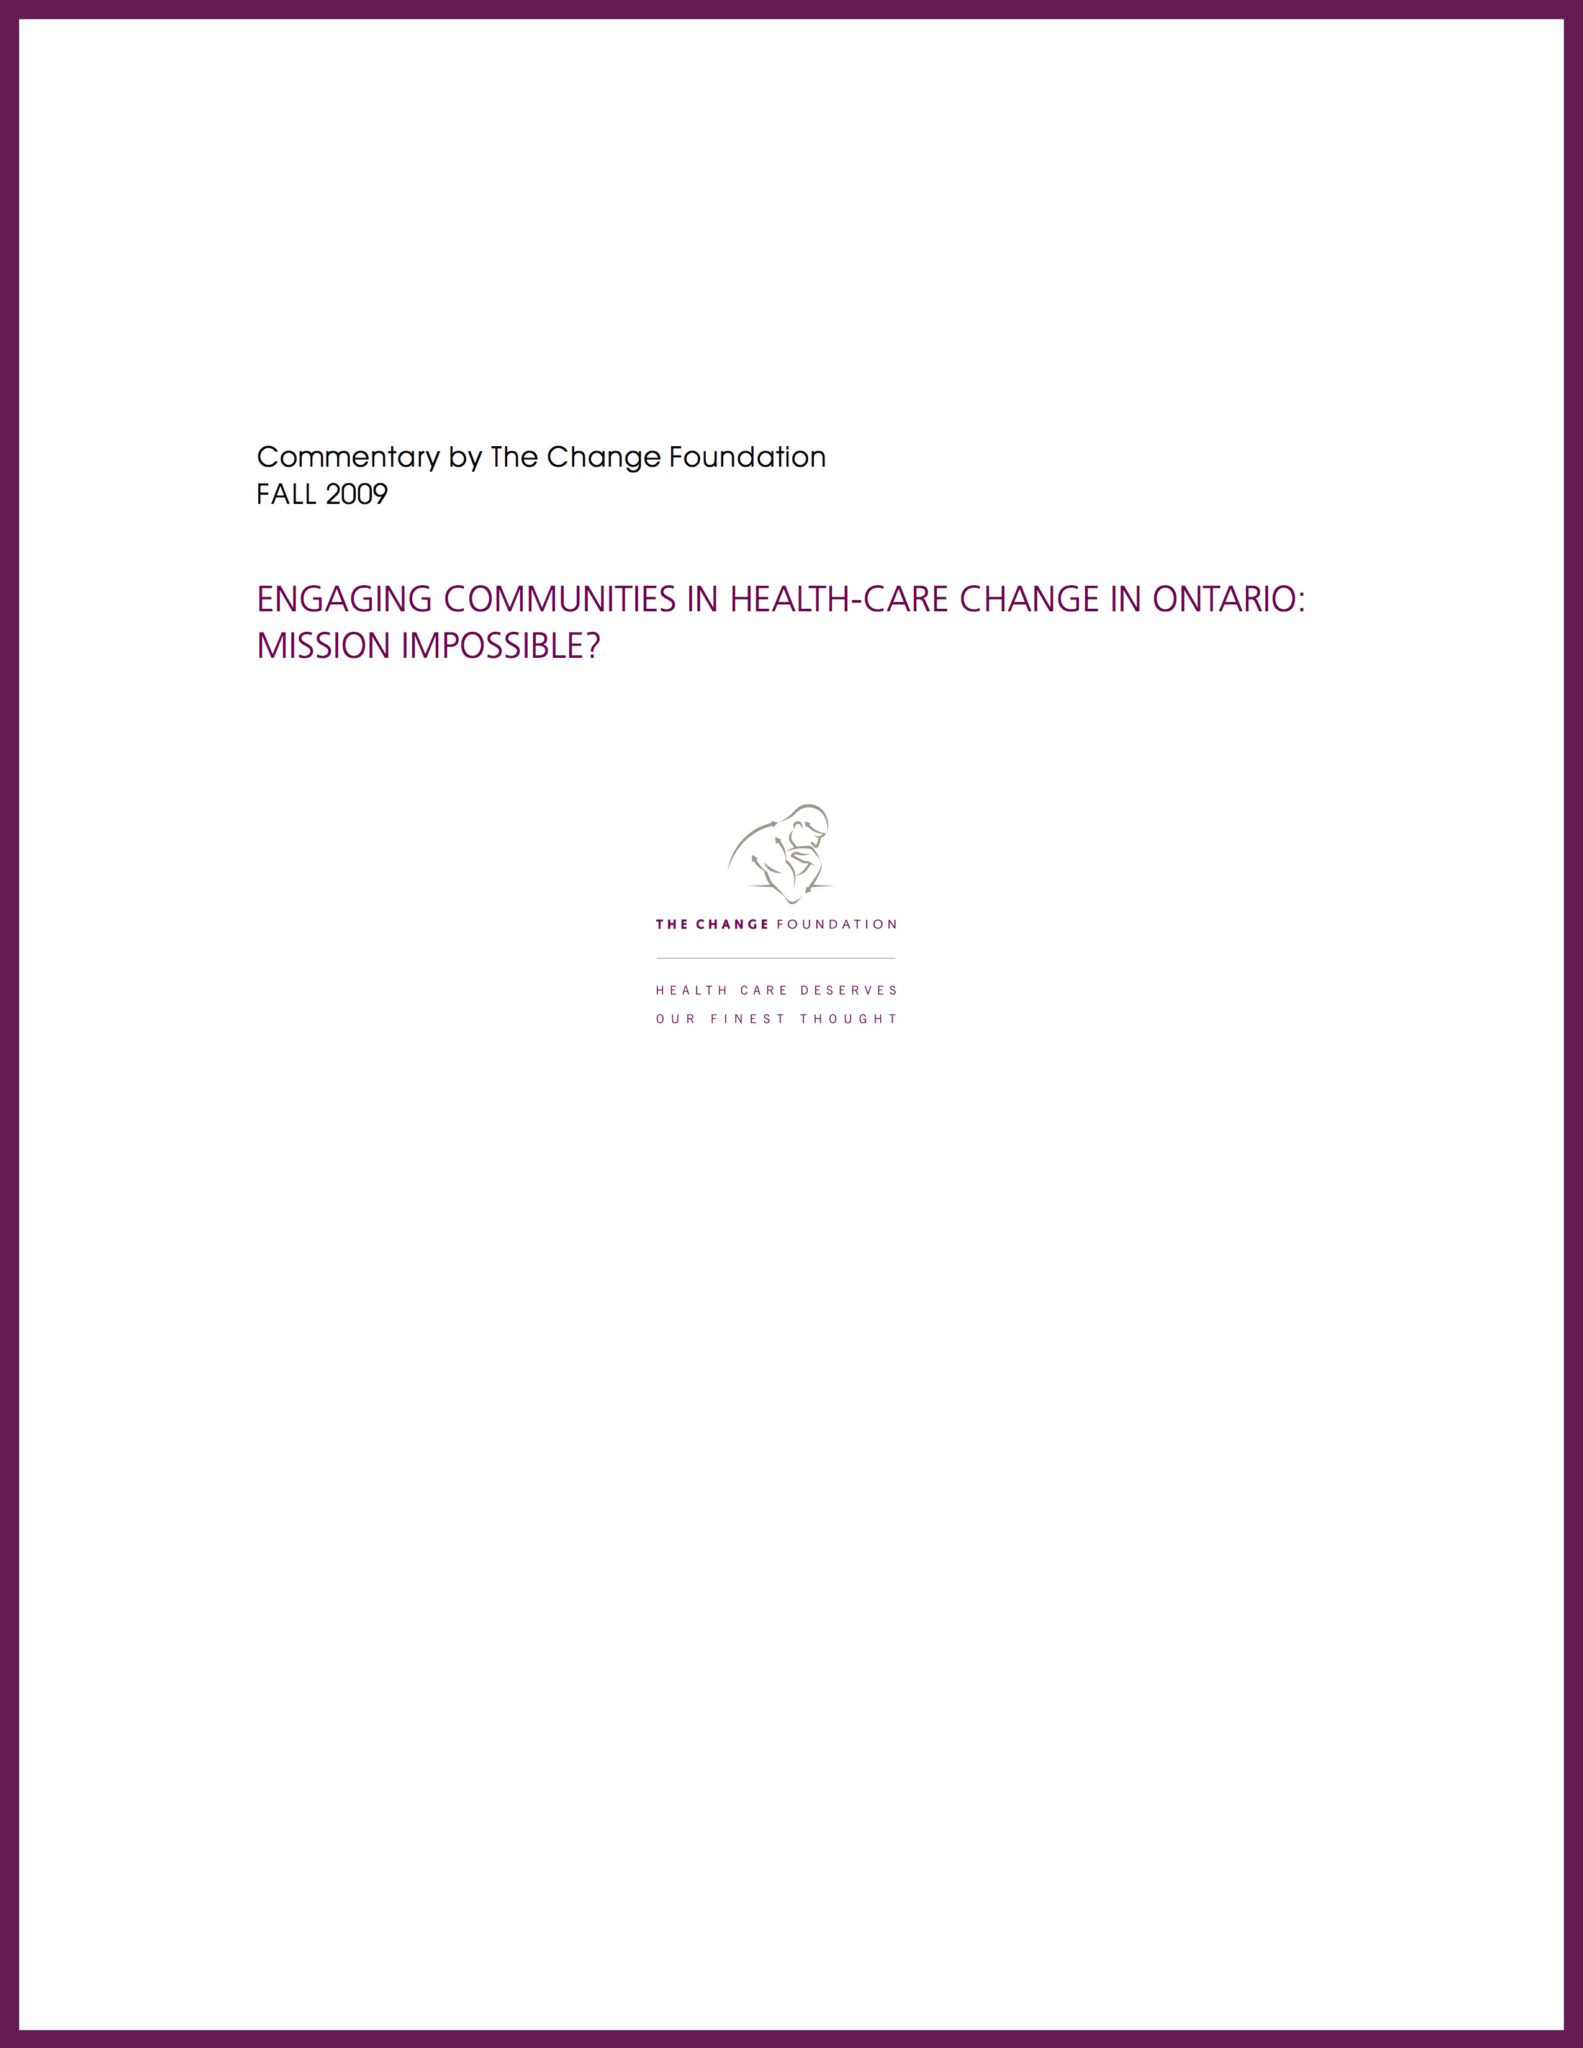 Engaging Communities in Healthcare Change in Ontario: Mission Impossible?